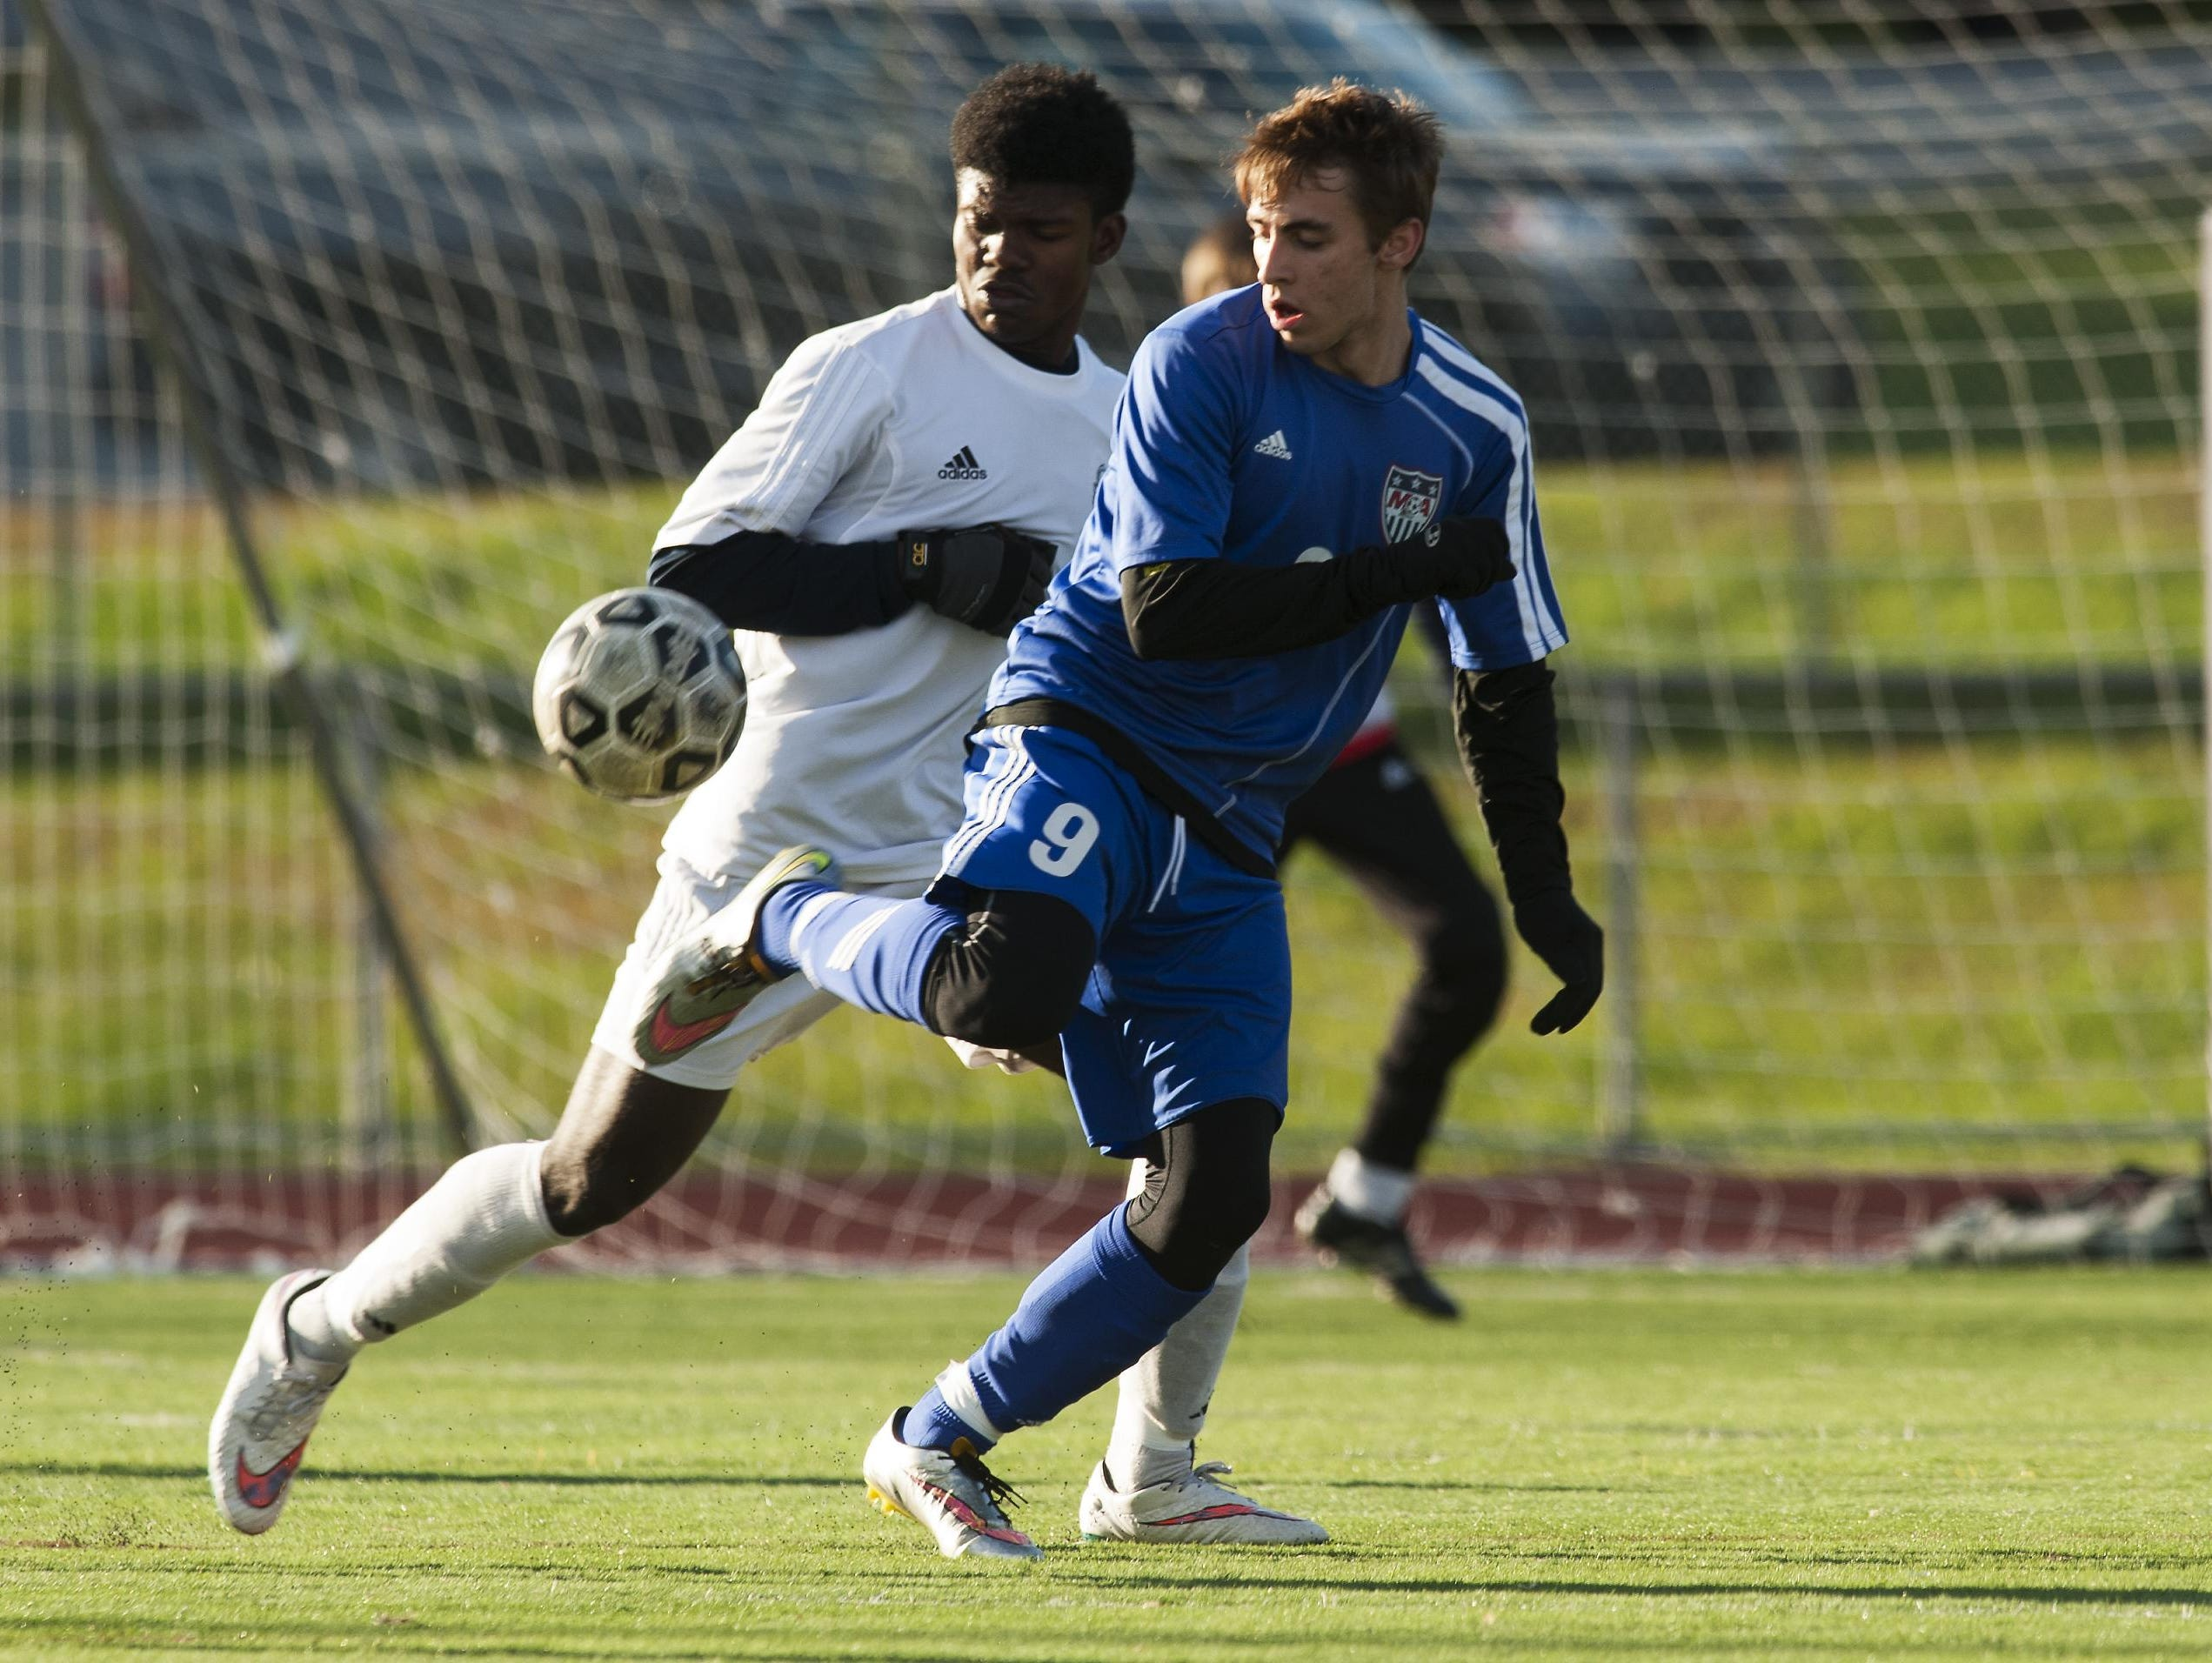 Mount Anthony's Carter Bentley (9) plays the ball in front of Burlington's Maenda Bienfait Badibang (21) during a Division I high school boys soccer quarterfinal at Buck Hard Field on Friday.